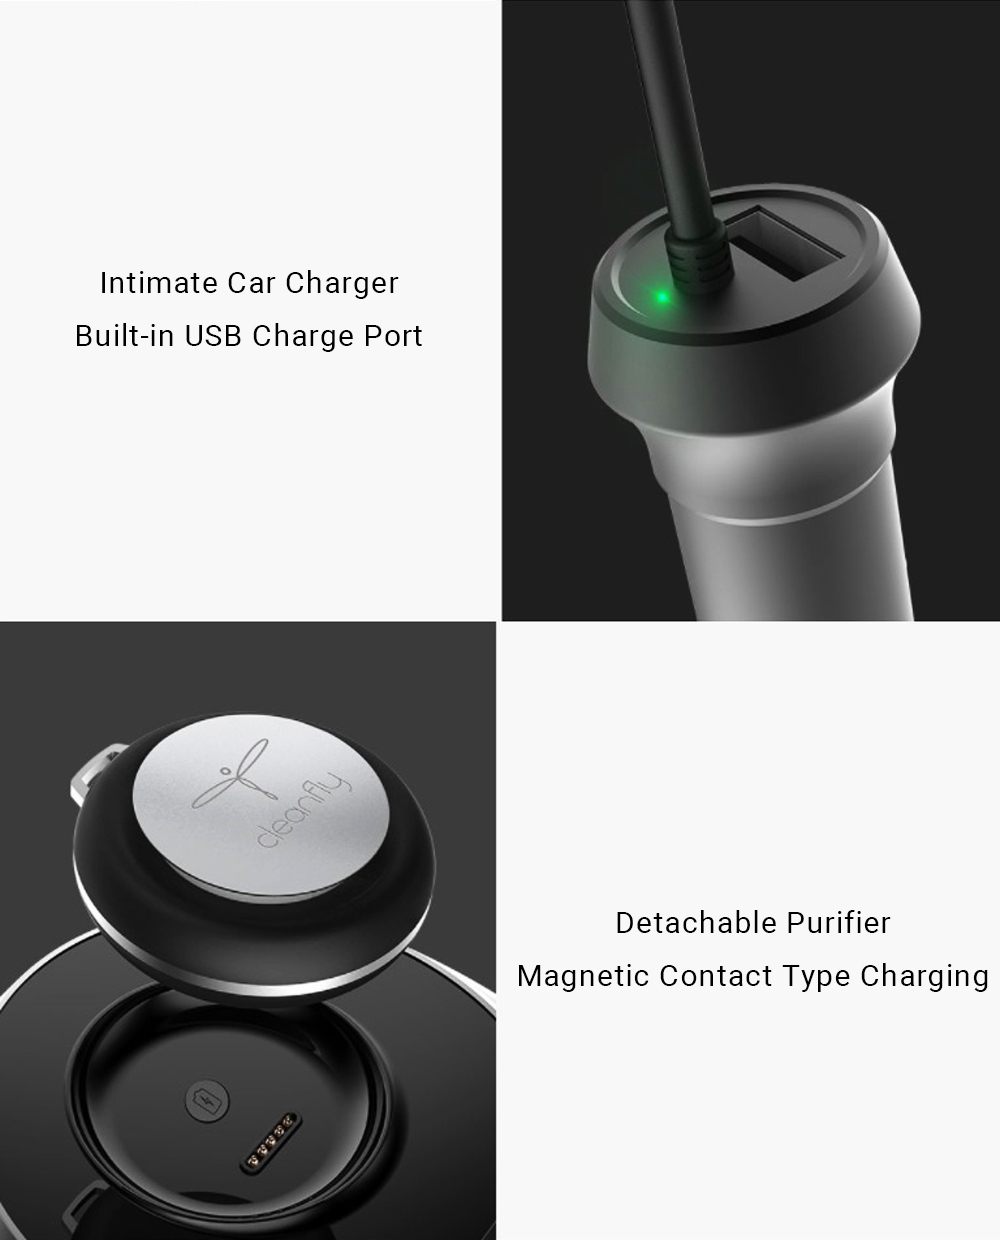 New original Xiaomi Mijia Cleanfly M1 Car Anion Air Purifier LED Display Mute Portable Purifier Support Parking Purification USB (9)